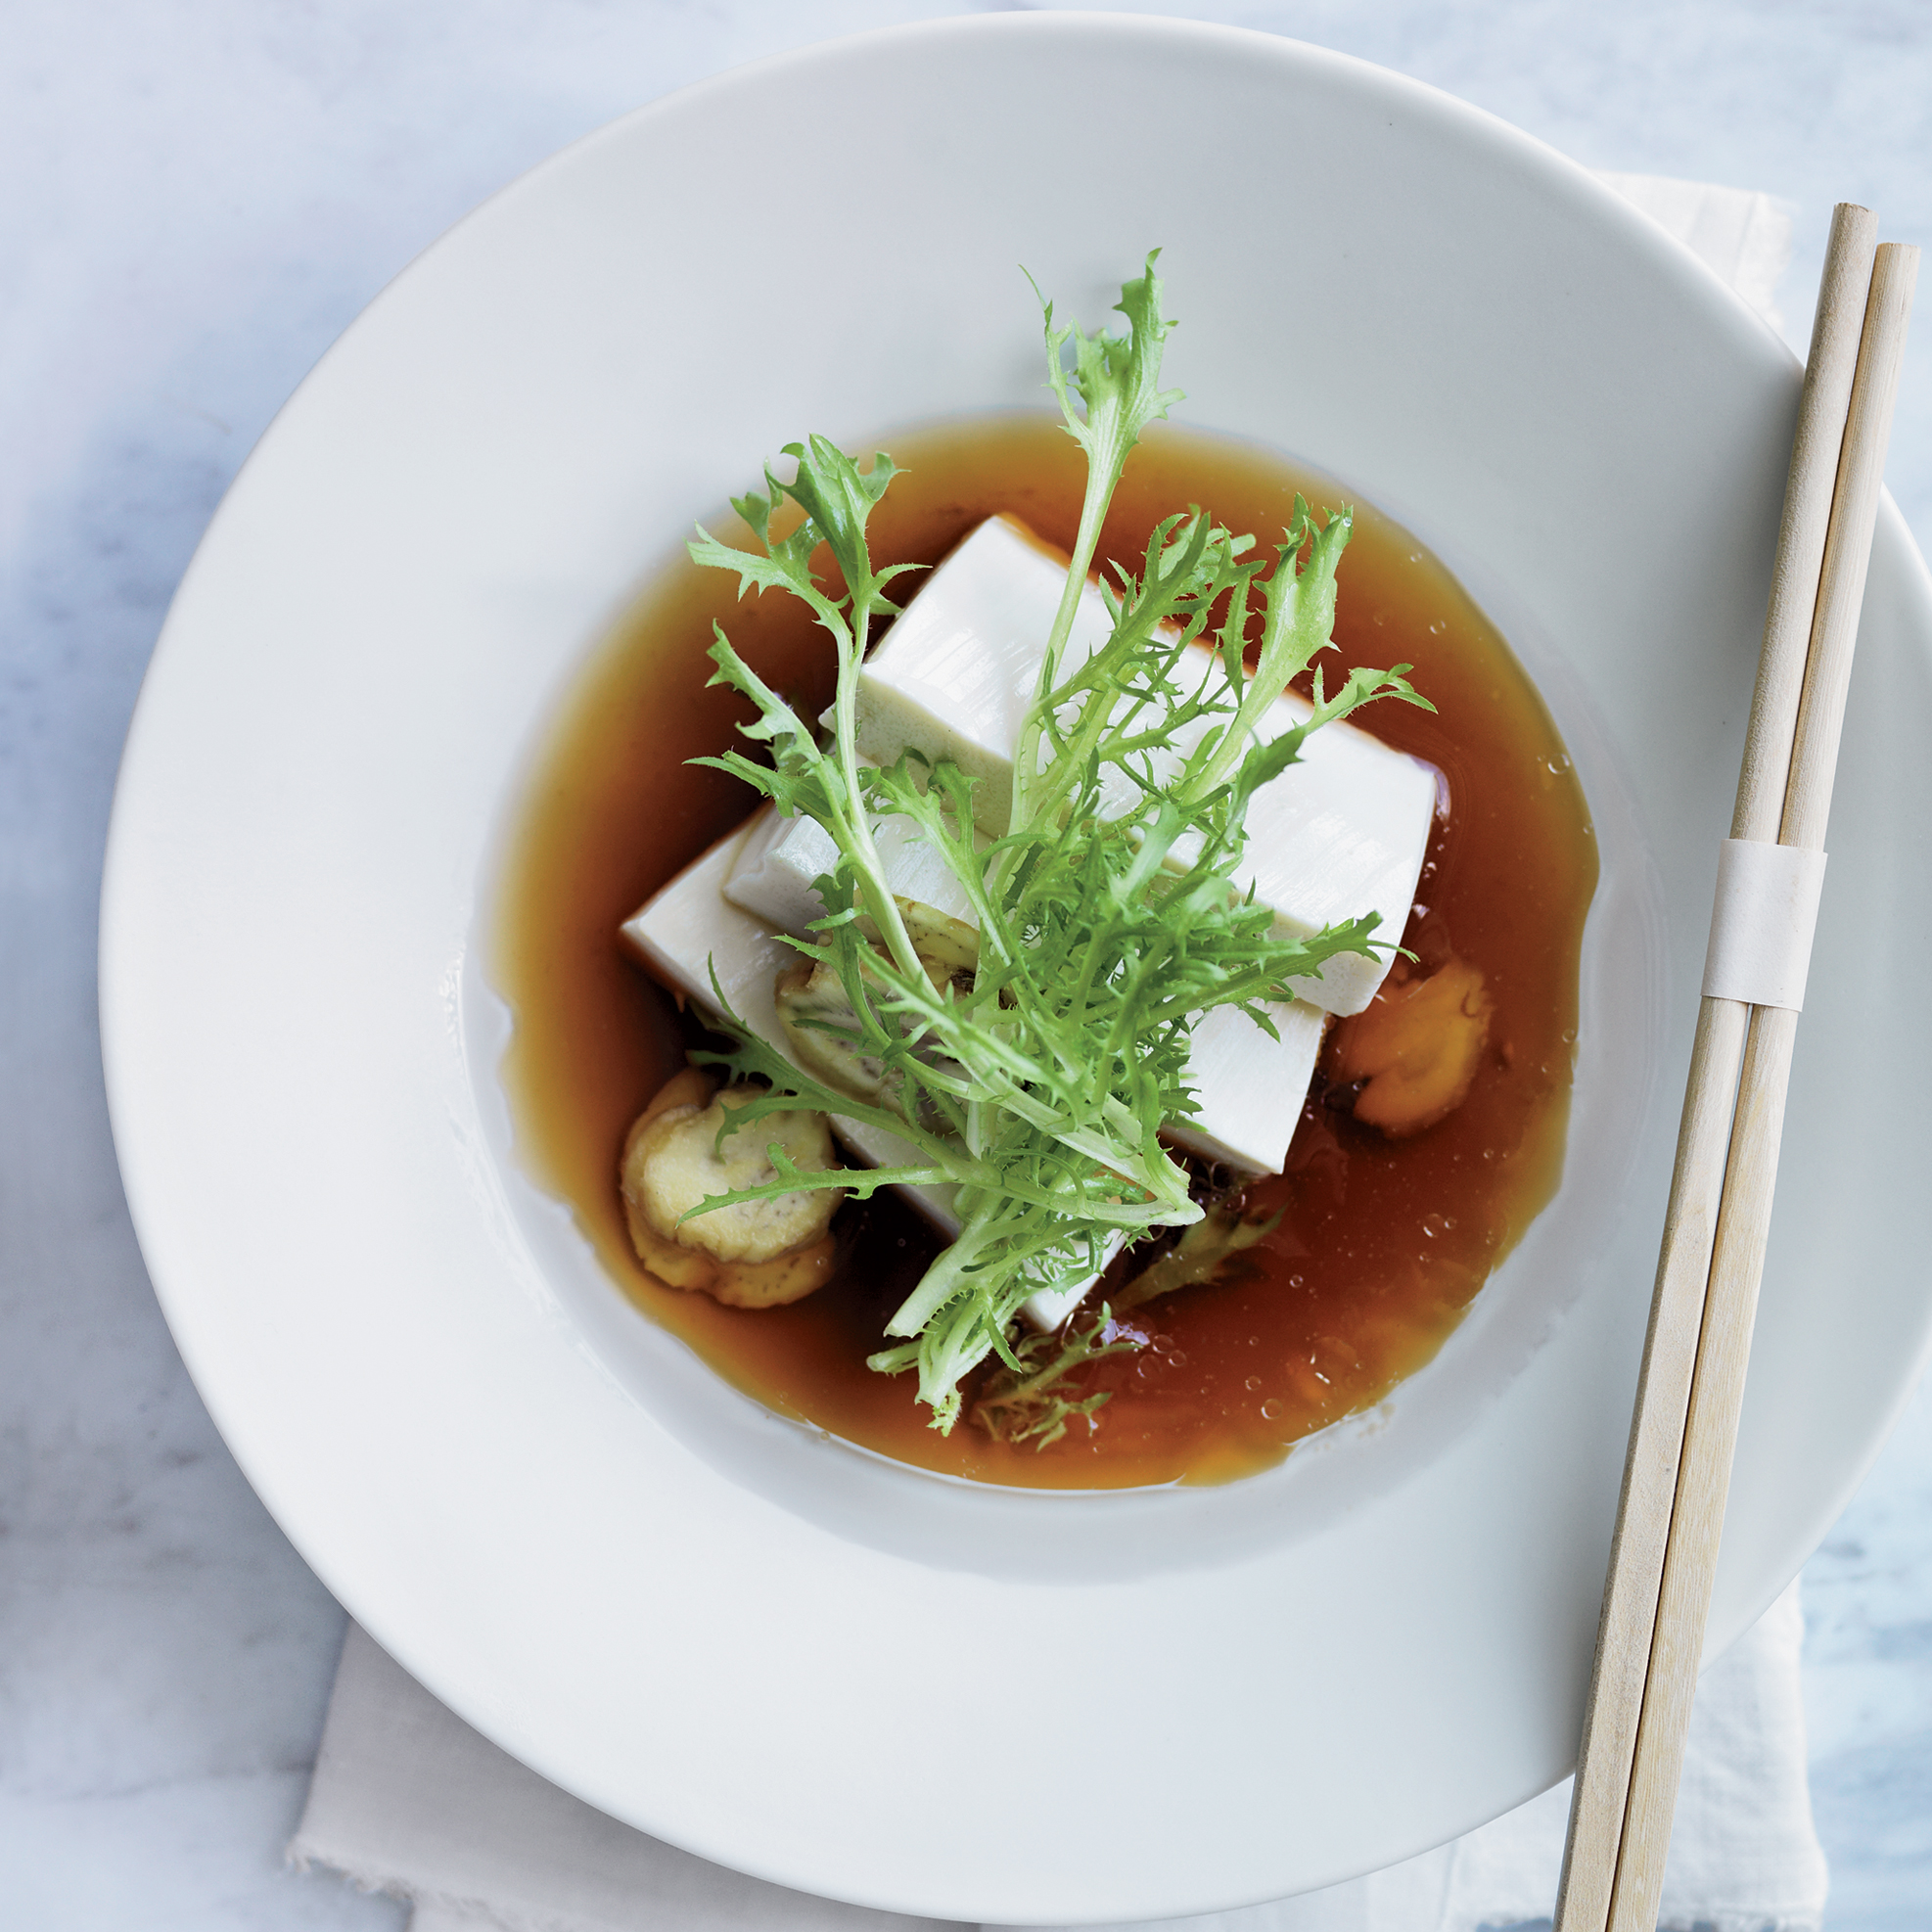 Cold Tofu with Chestnuts in Apple Dashi